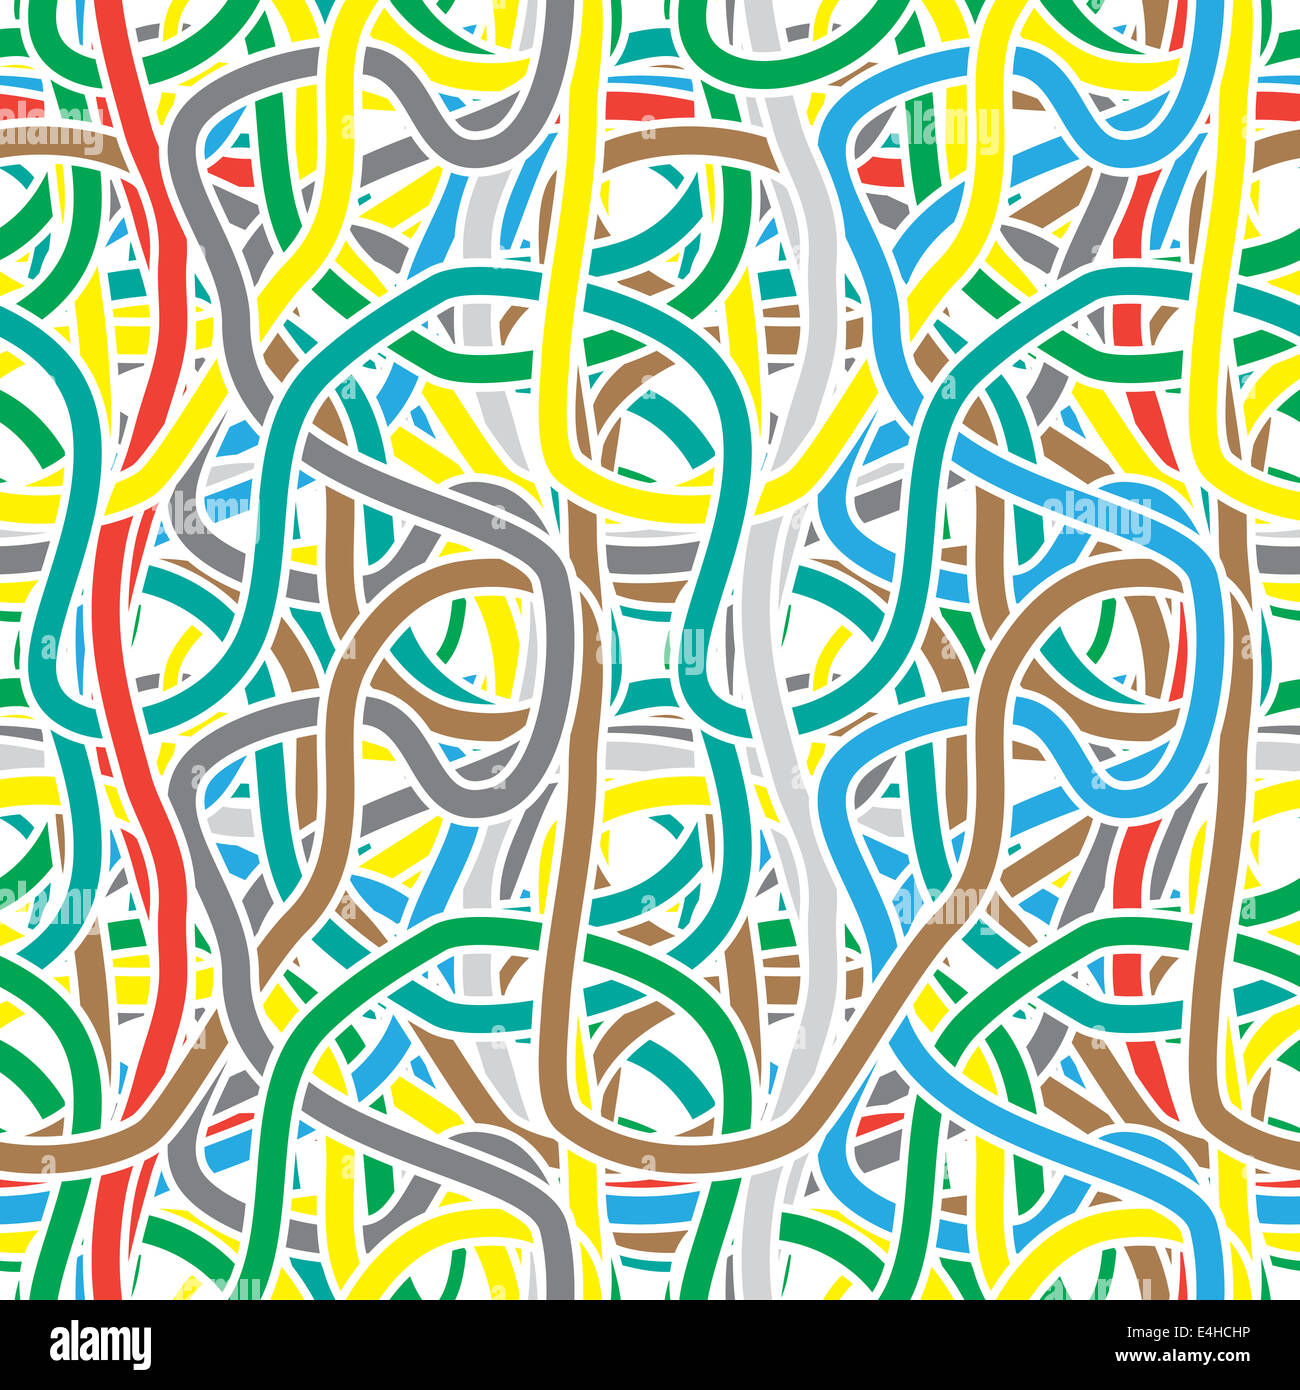 Seamless pattern - Absolutely continuous color stripes like a festive streamers - Stock Image